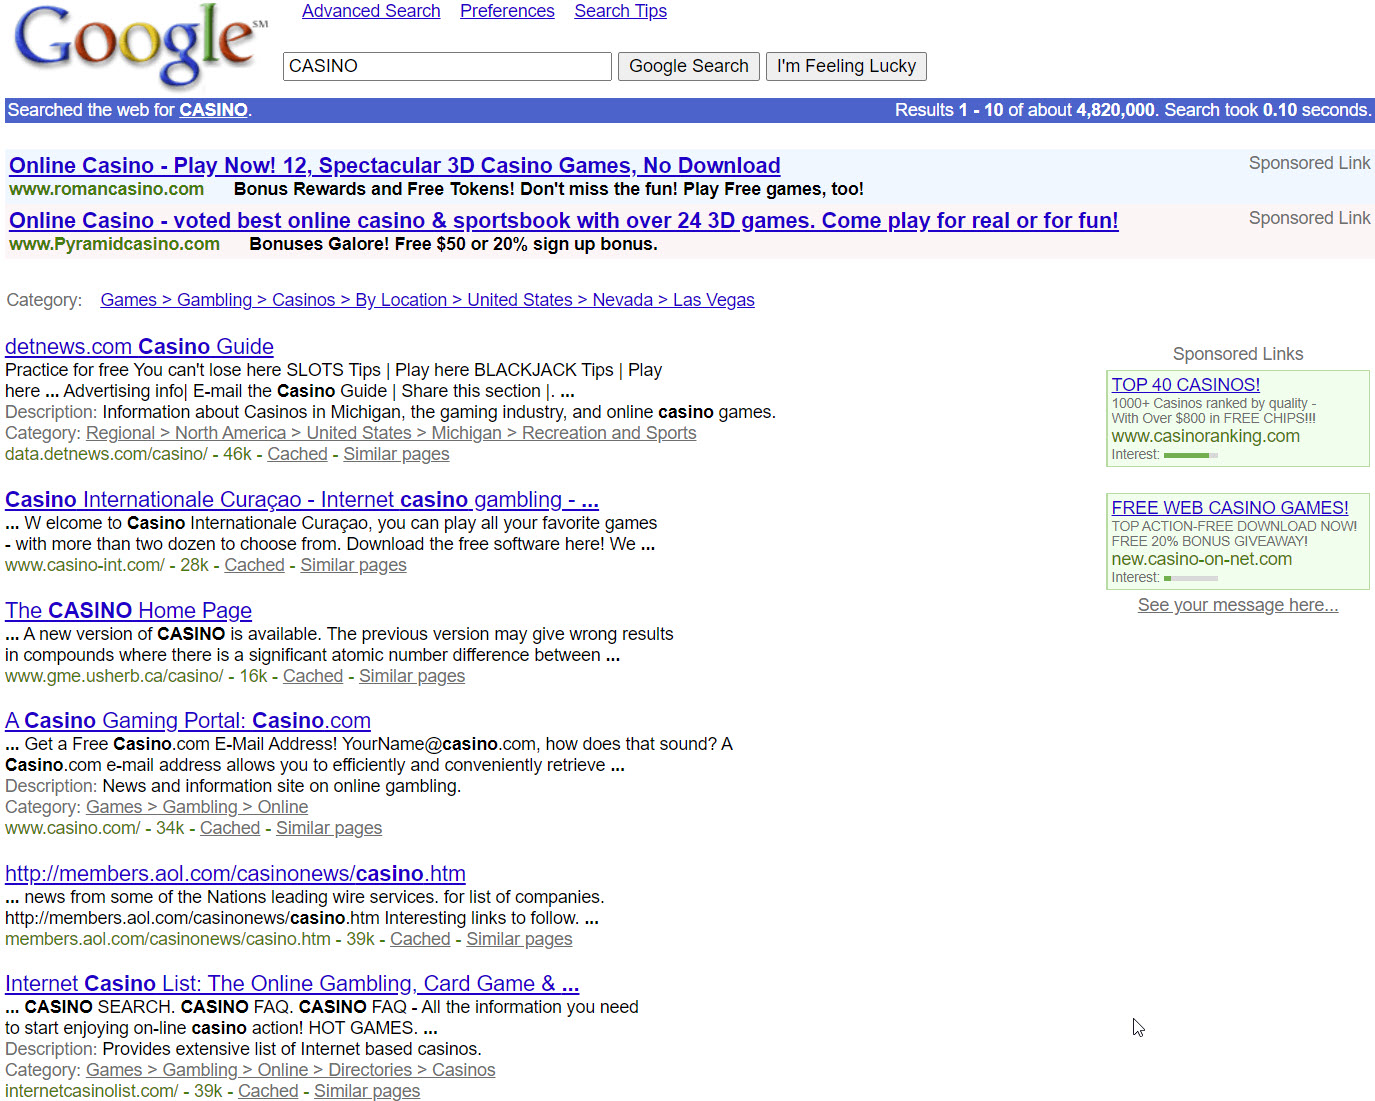 2001 Google search results with clear ad labeling and small ad units.